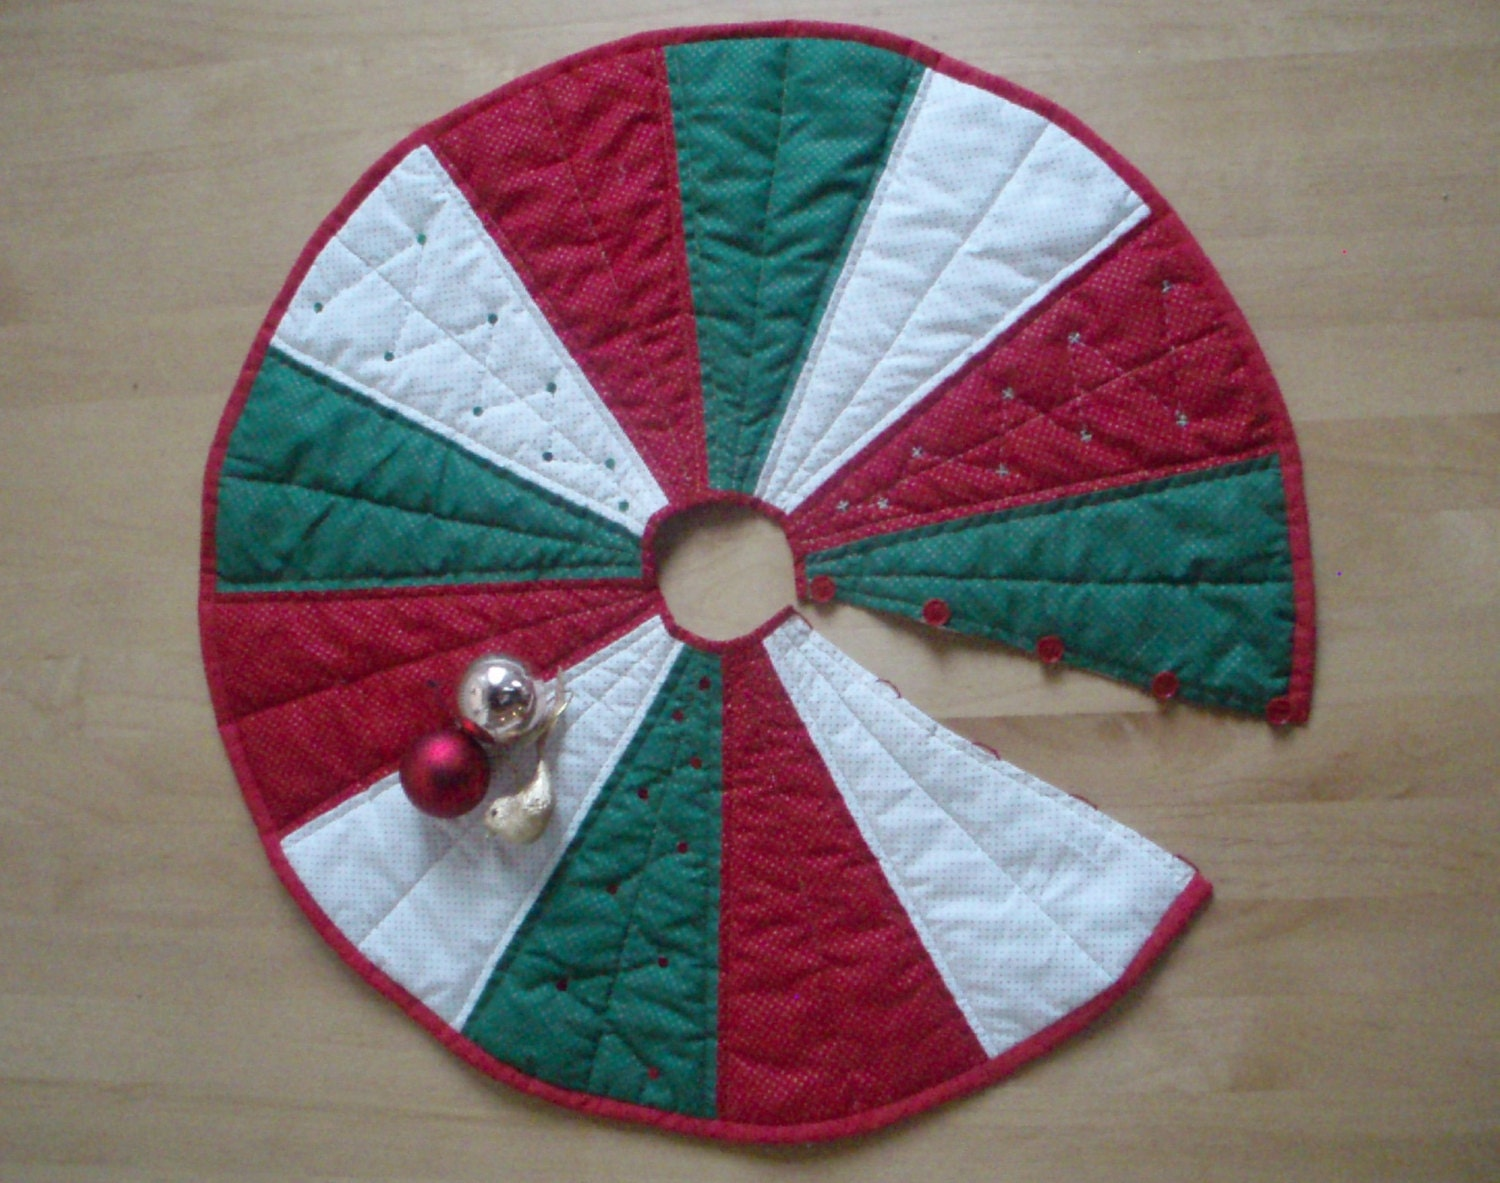 Easy Knitting Pattern For Christmas Tree Skirt : Tree skirt sewing patterns lucky mature pussy